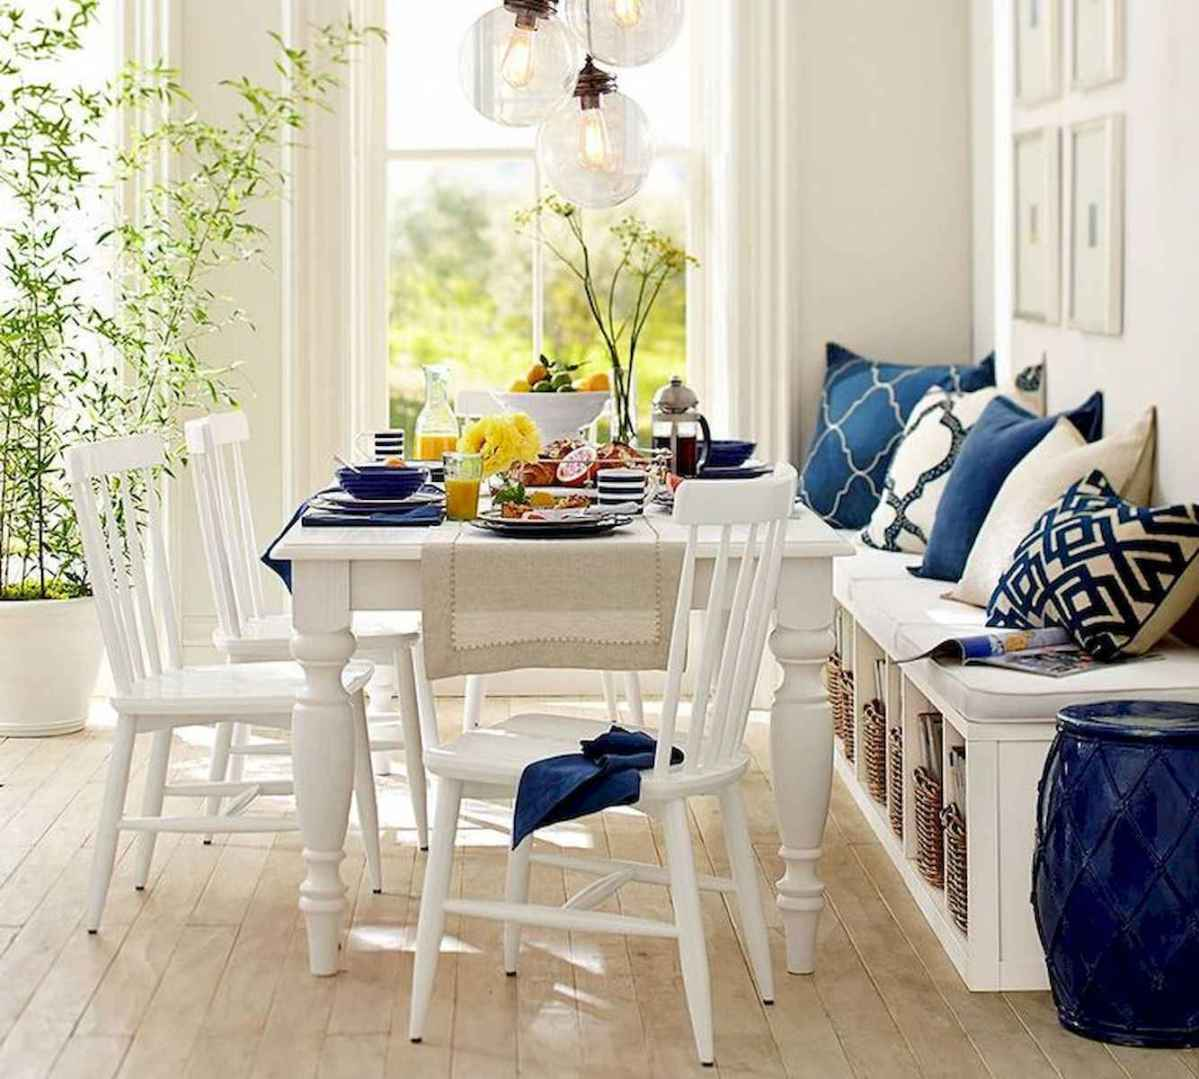 50 Vintage Dining Table Design Ideas And Decor (14)